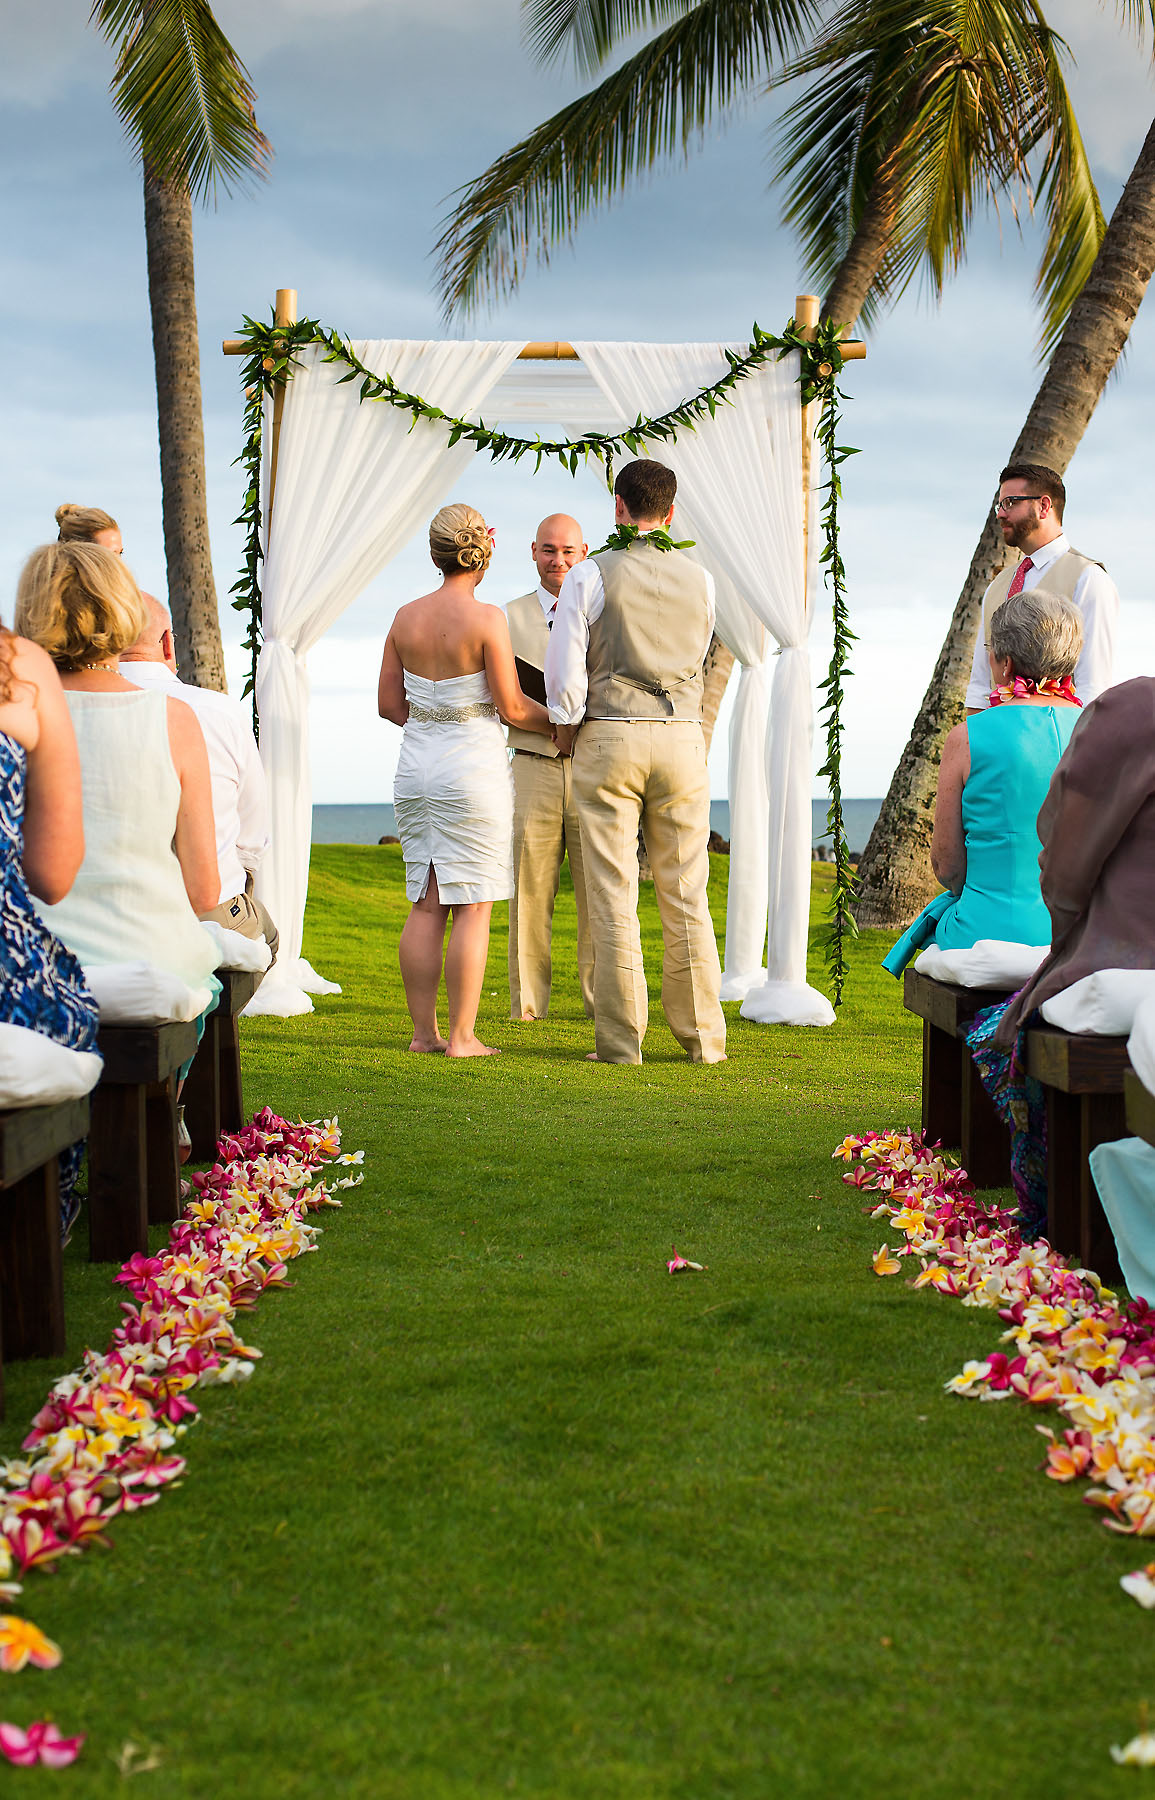 A Beach Wedding Ceremony with Flowers Along the Aisle and Palm Trees in the Background in Maui, Hawaii. Photo Credit: Jared Lawson Photography